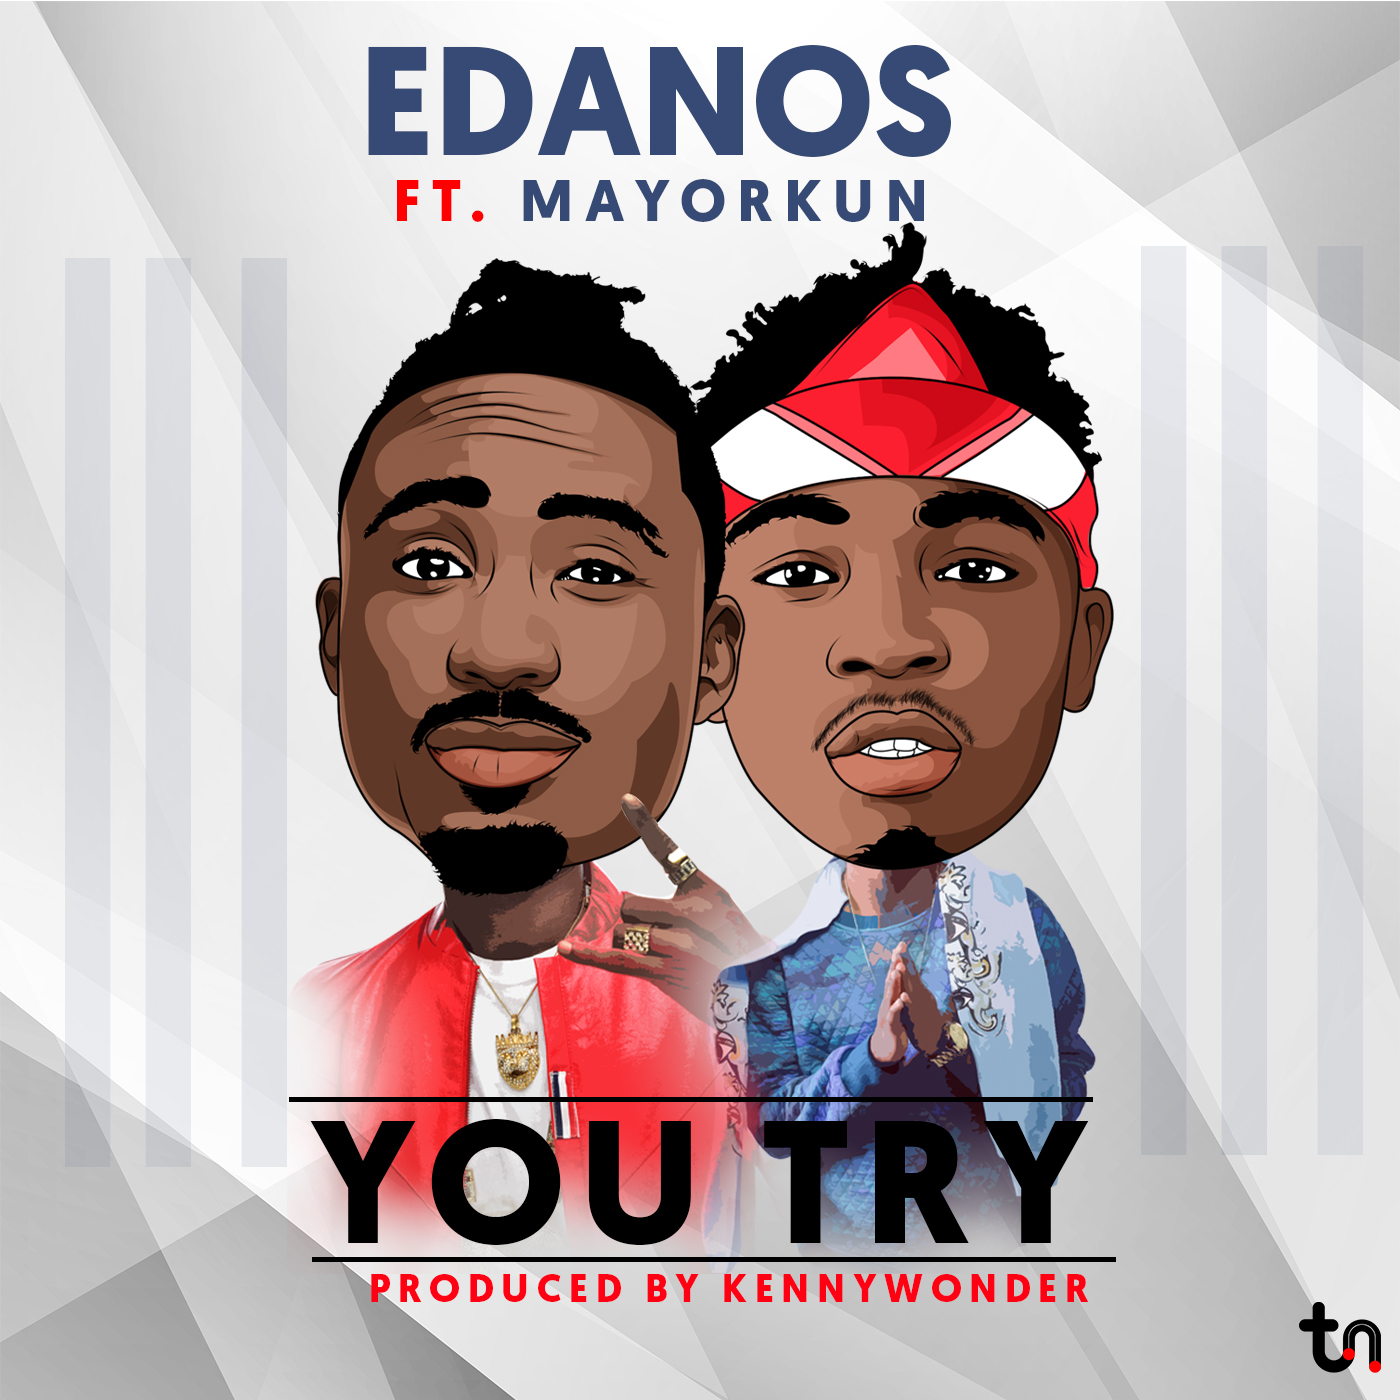 Edanos Feat. Mayorkun – YOU TRY